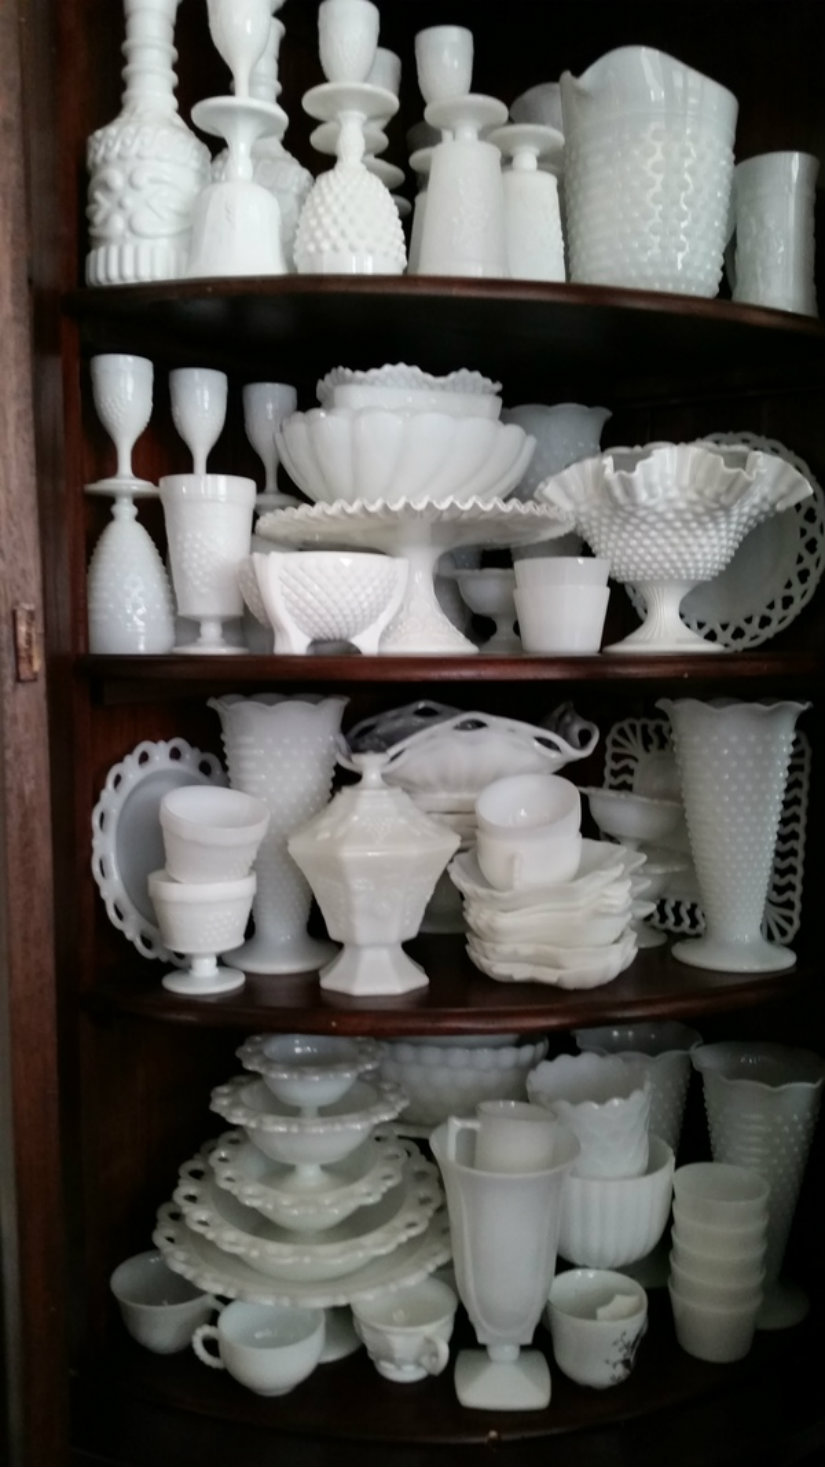 From Linda Simmons: Milk glass collection